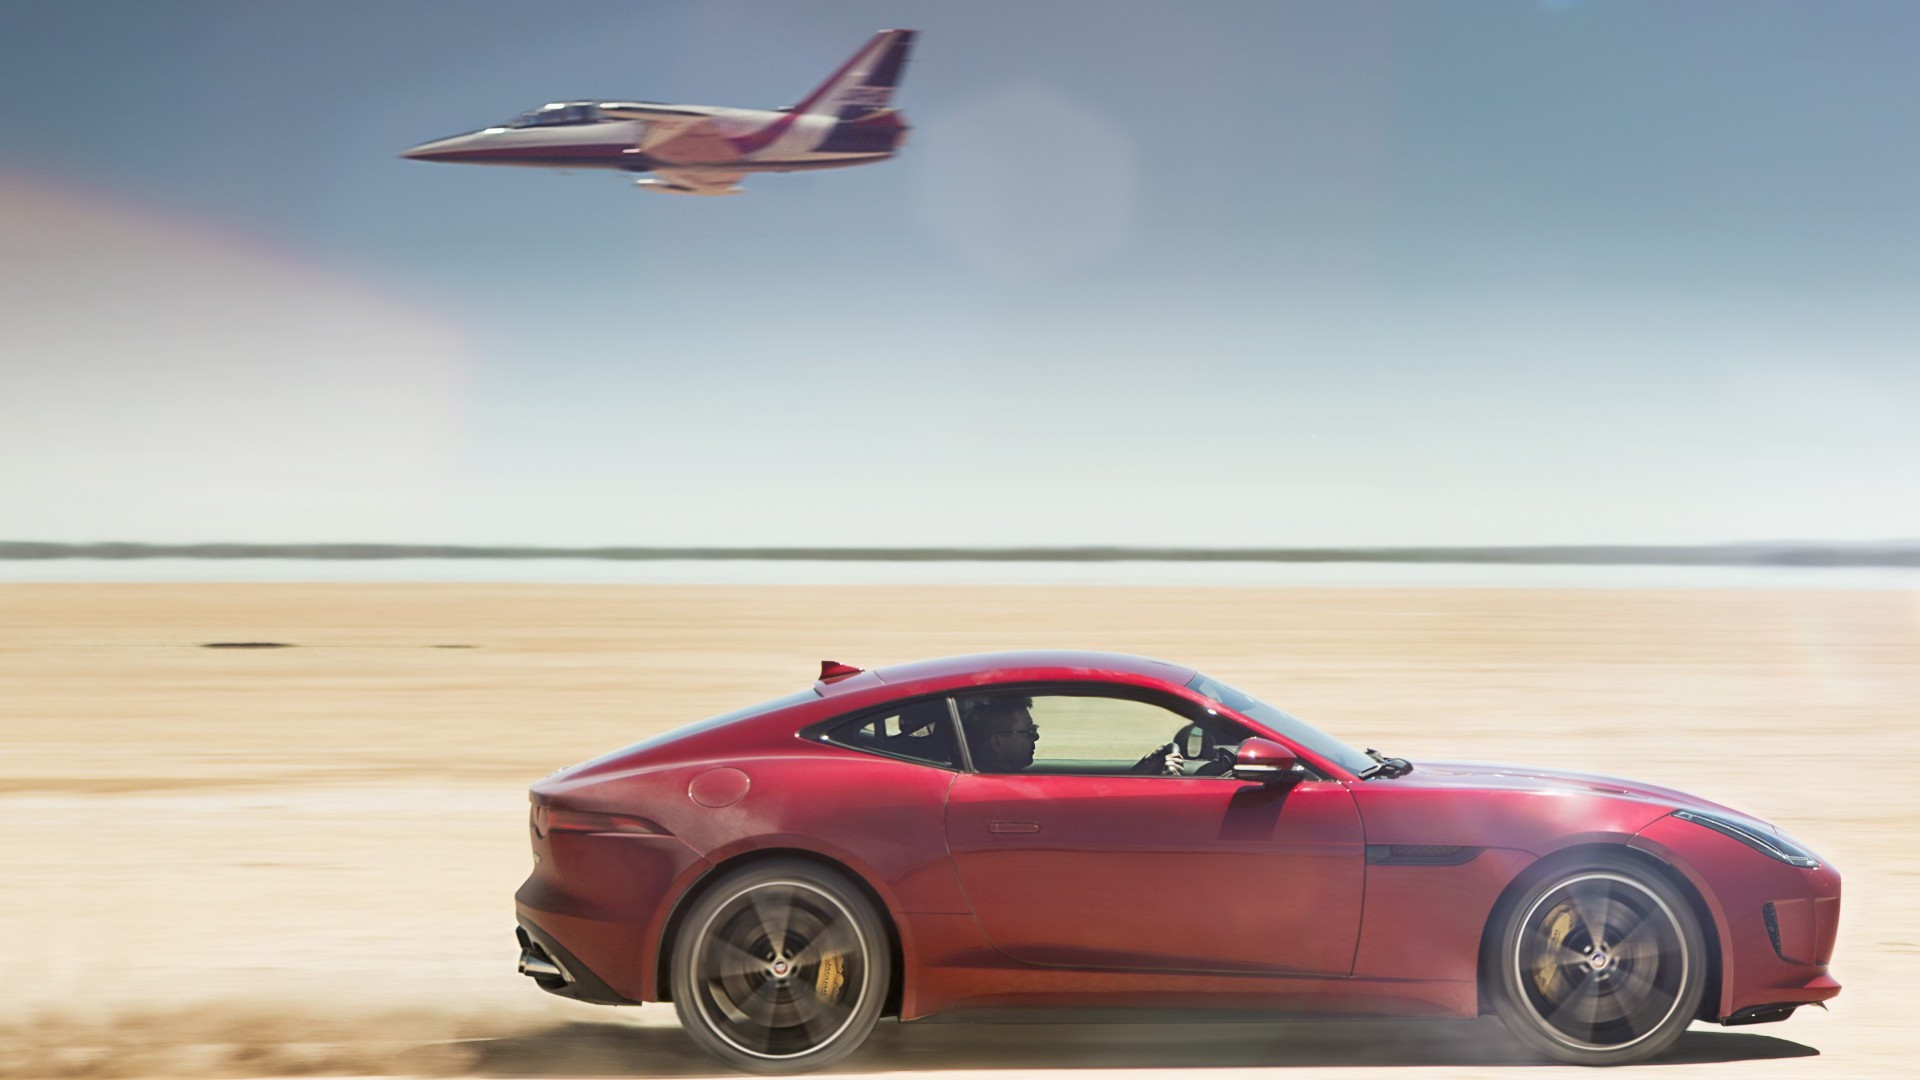 Ягуар Ф-тайп, спорткар, класс-люкс, 2015, Jaguar F-Type, Coupe, Best Cars 2015, sports car, luxury cars, test drive, desert, jet, rent, buy (horizontal)